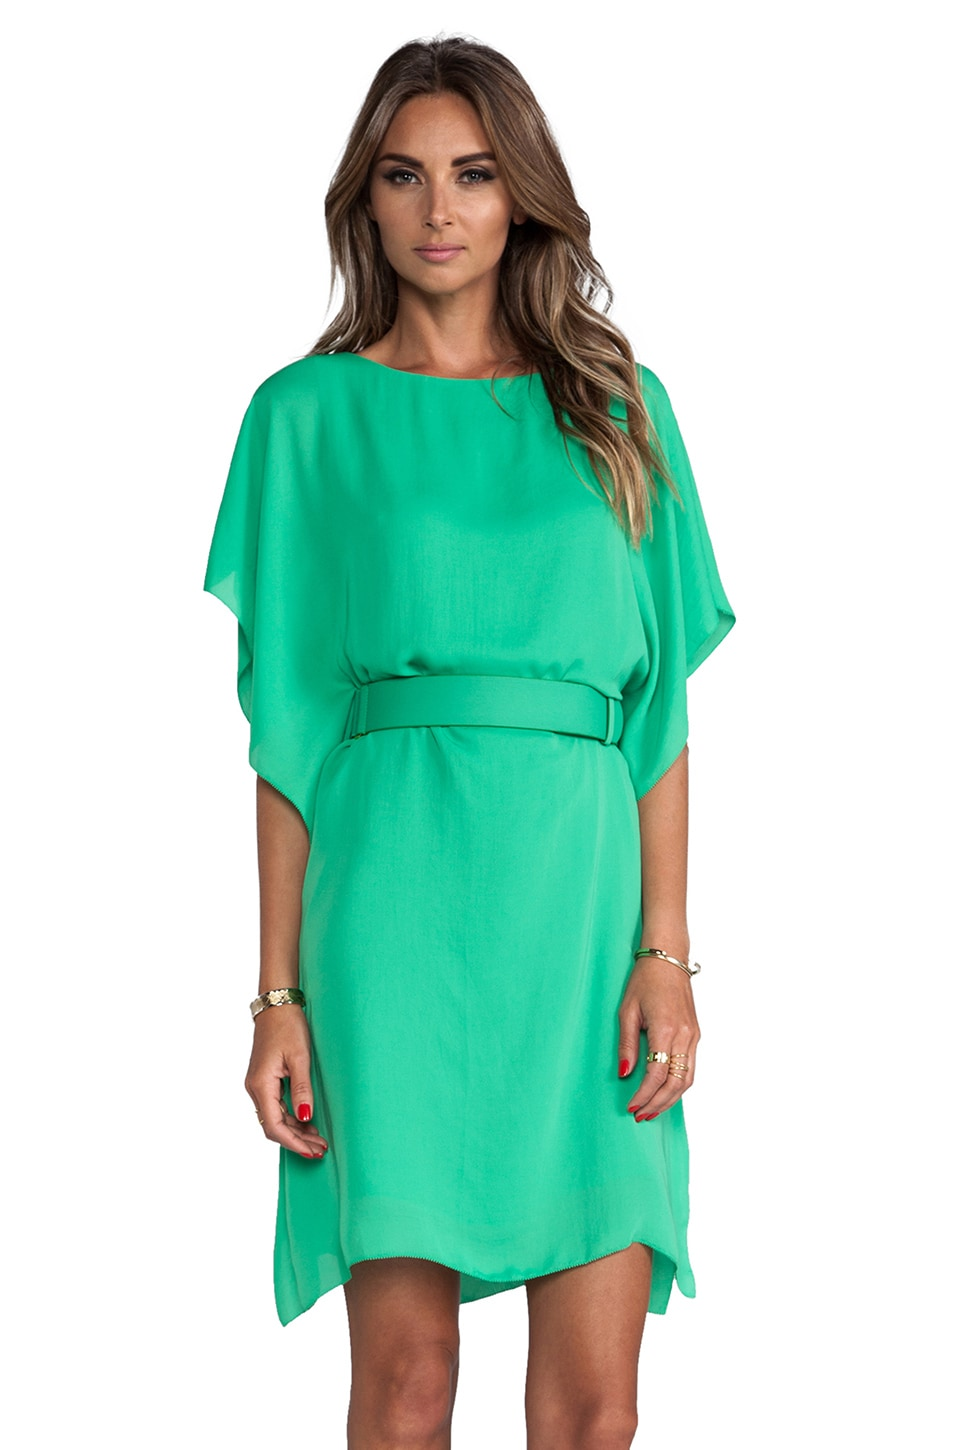 Halston Heritage Boatneck Belted Dress in Grass